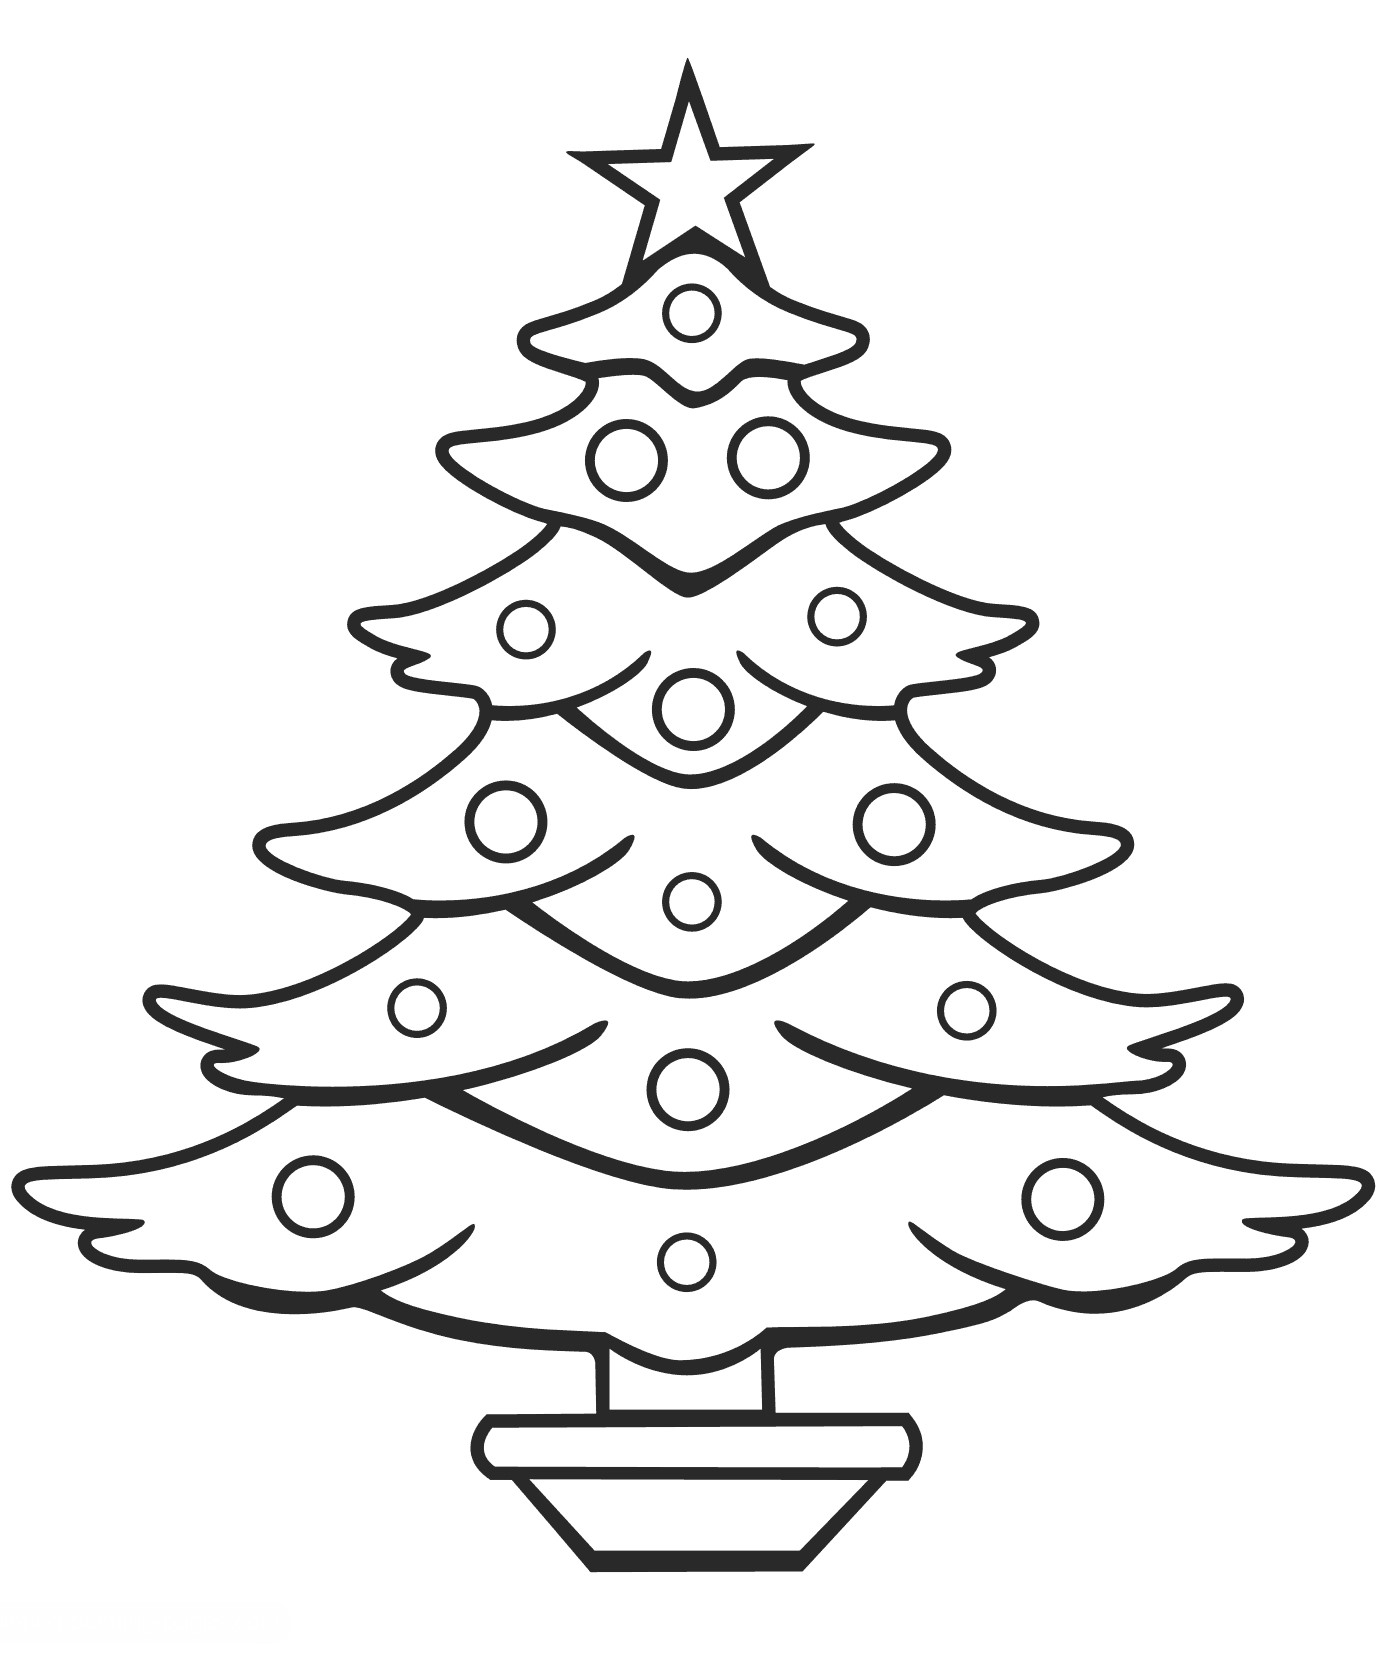 Christmas coloring pages games myworldweb for Coloring pages games